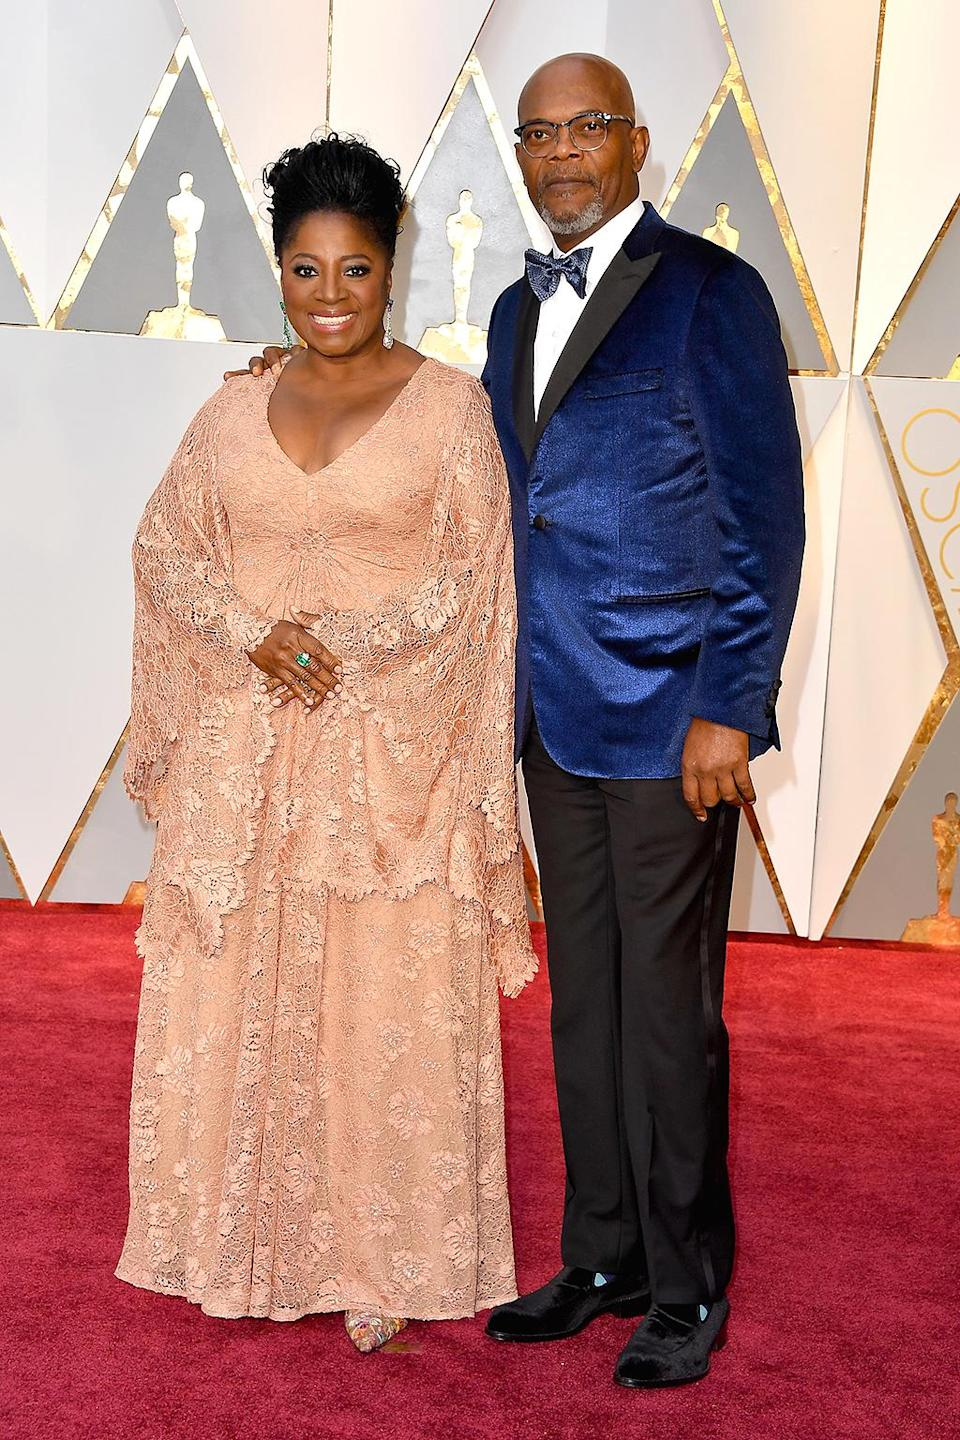 <p>Actor Samuel L. Jackson and LaTanya Richardson Jackson attend the 89th Annual Academy Awards at Hollywood & Highland Center on February 26, 2017 in Hollywood, California. (Photo by Steve Granitz/WireImage) </p>